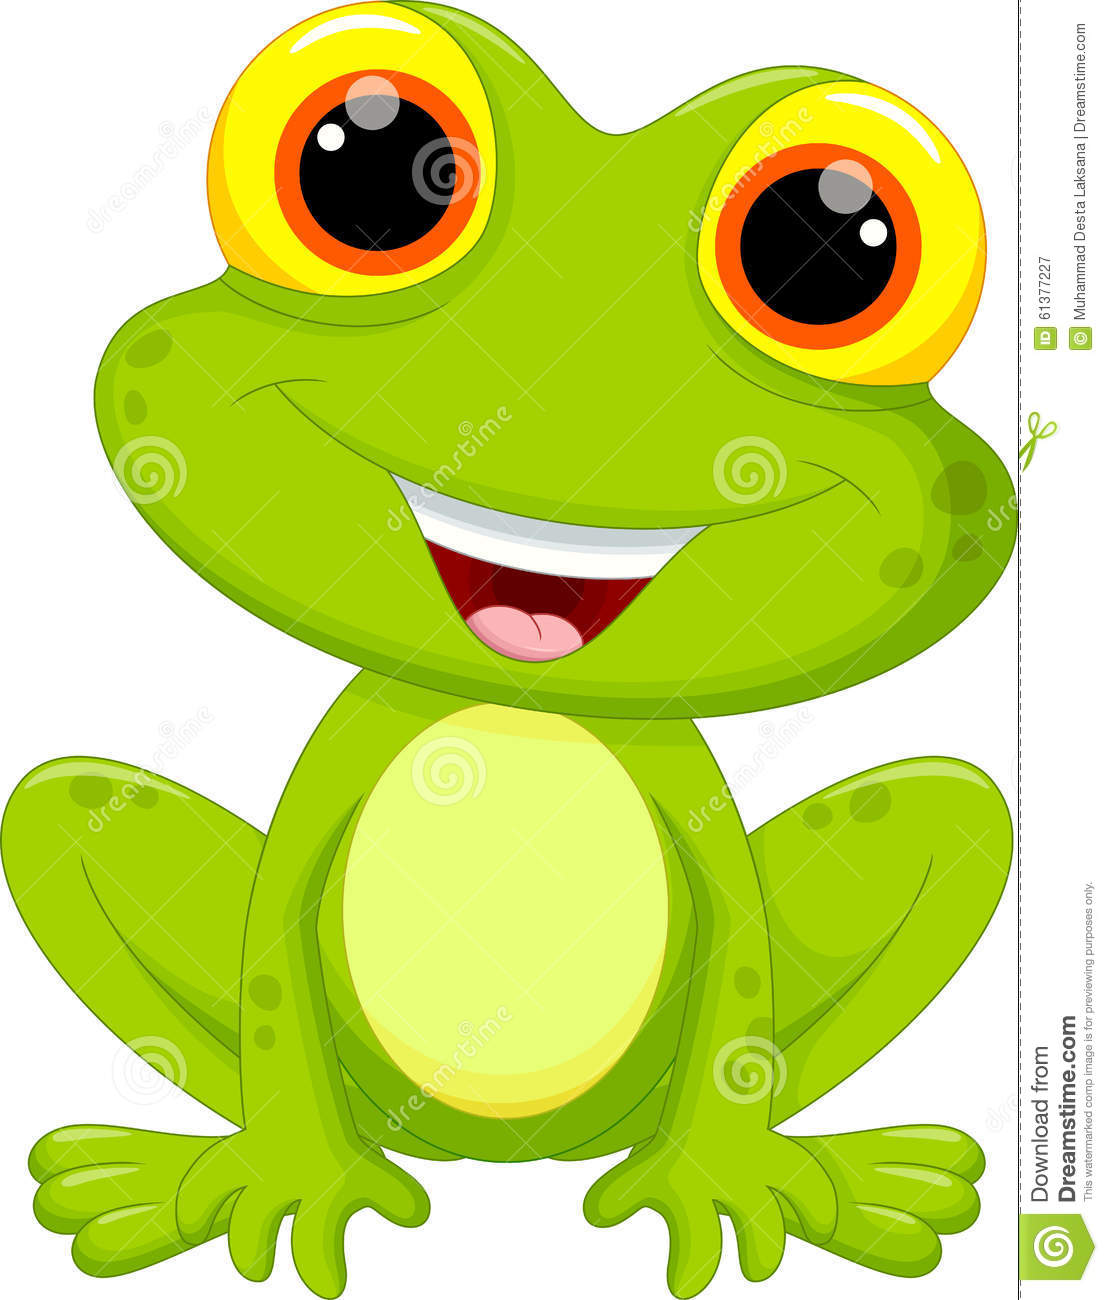 Cute Frog Cartoon Stock Illustration - Image: 61377227